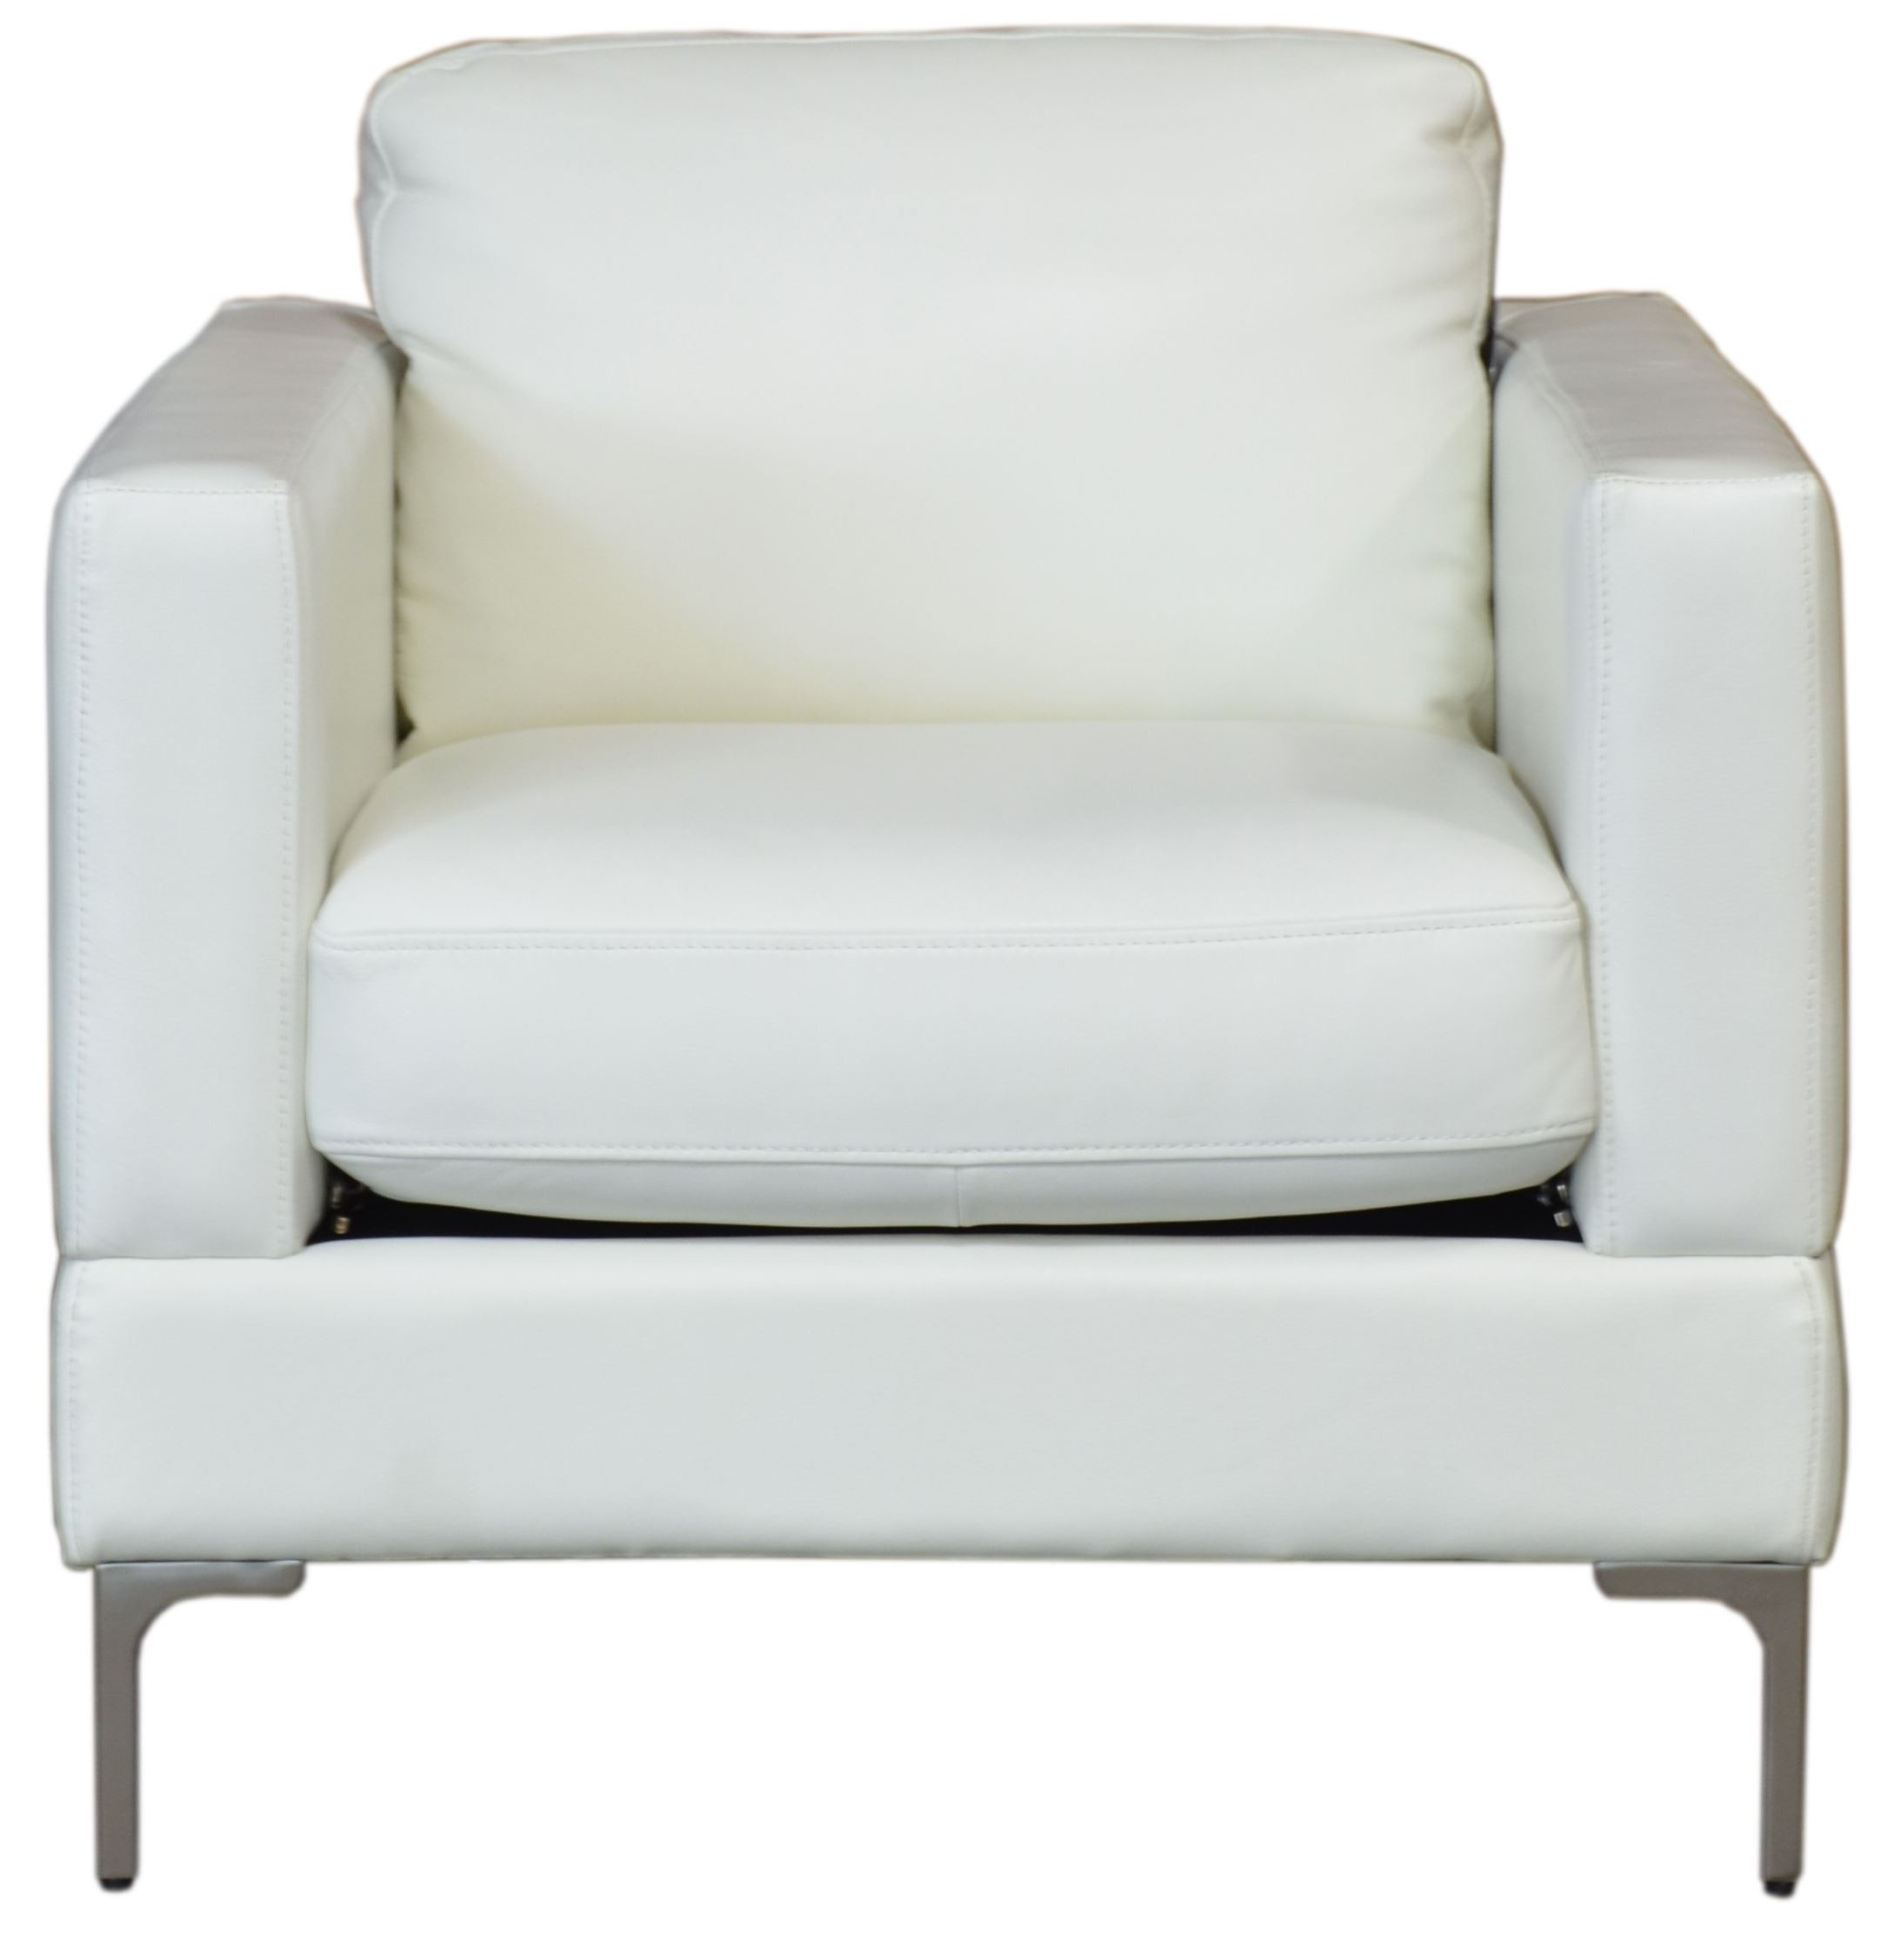 Tobia Snow White Leather Chair From Moroni Coleman Furniture